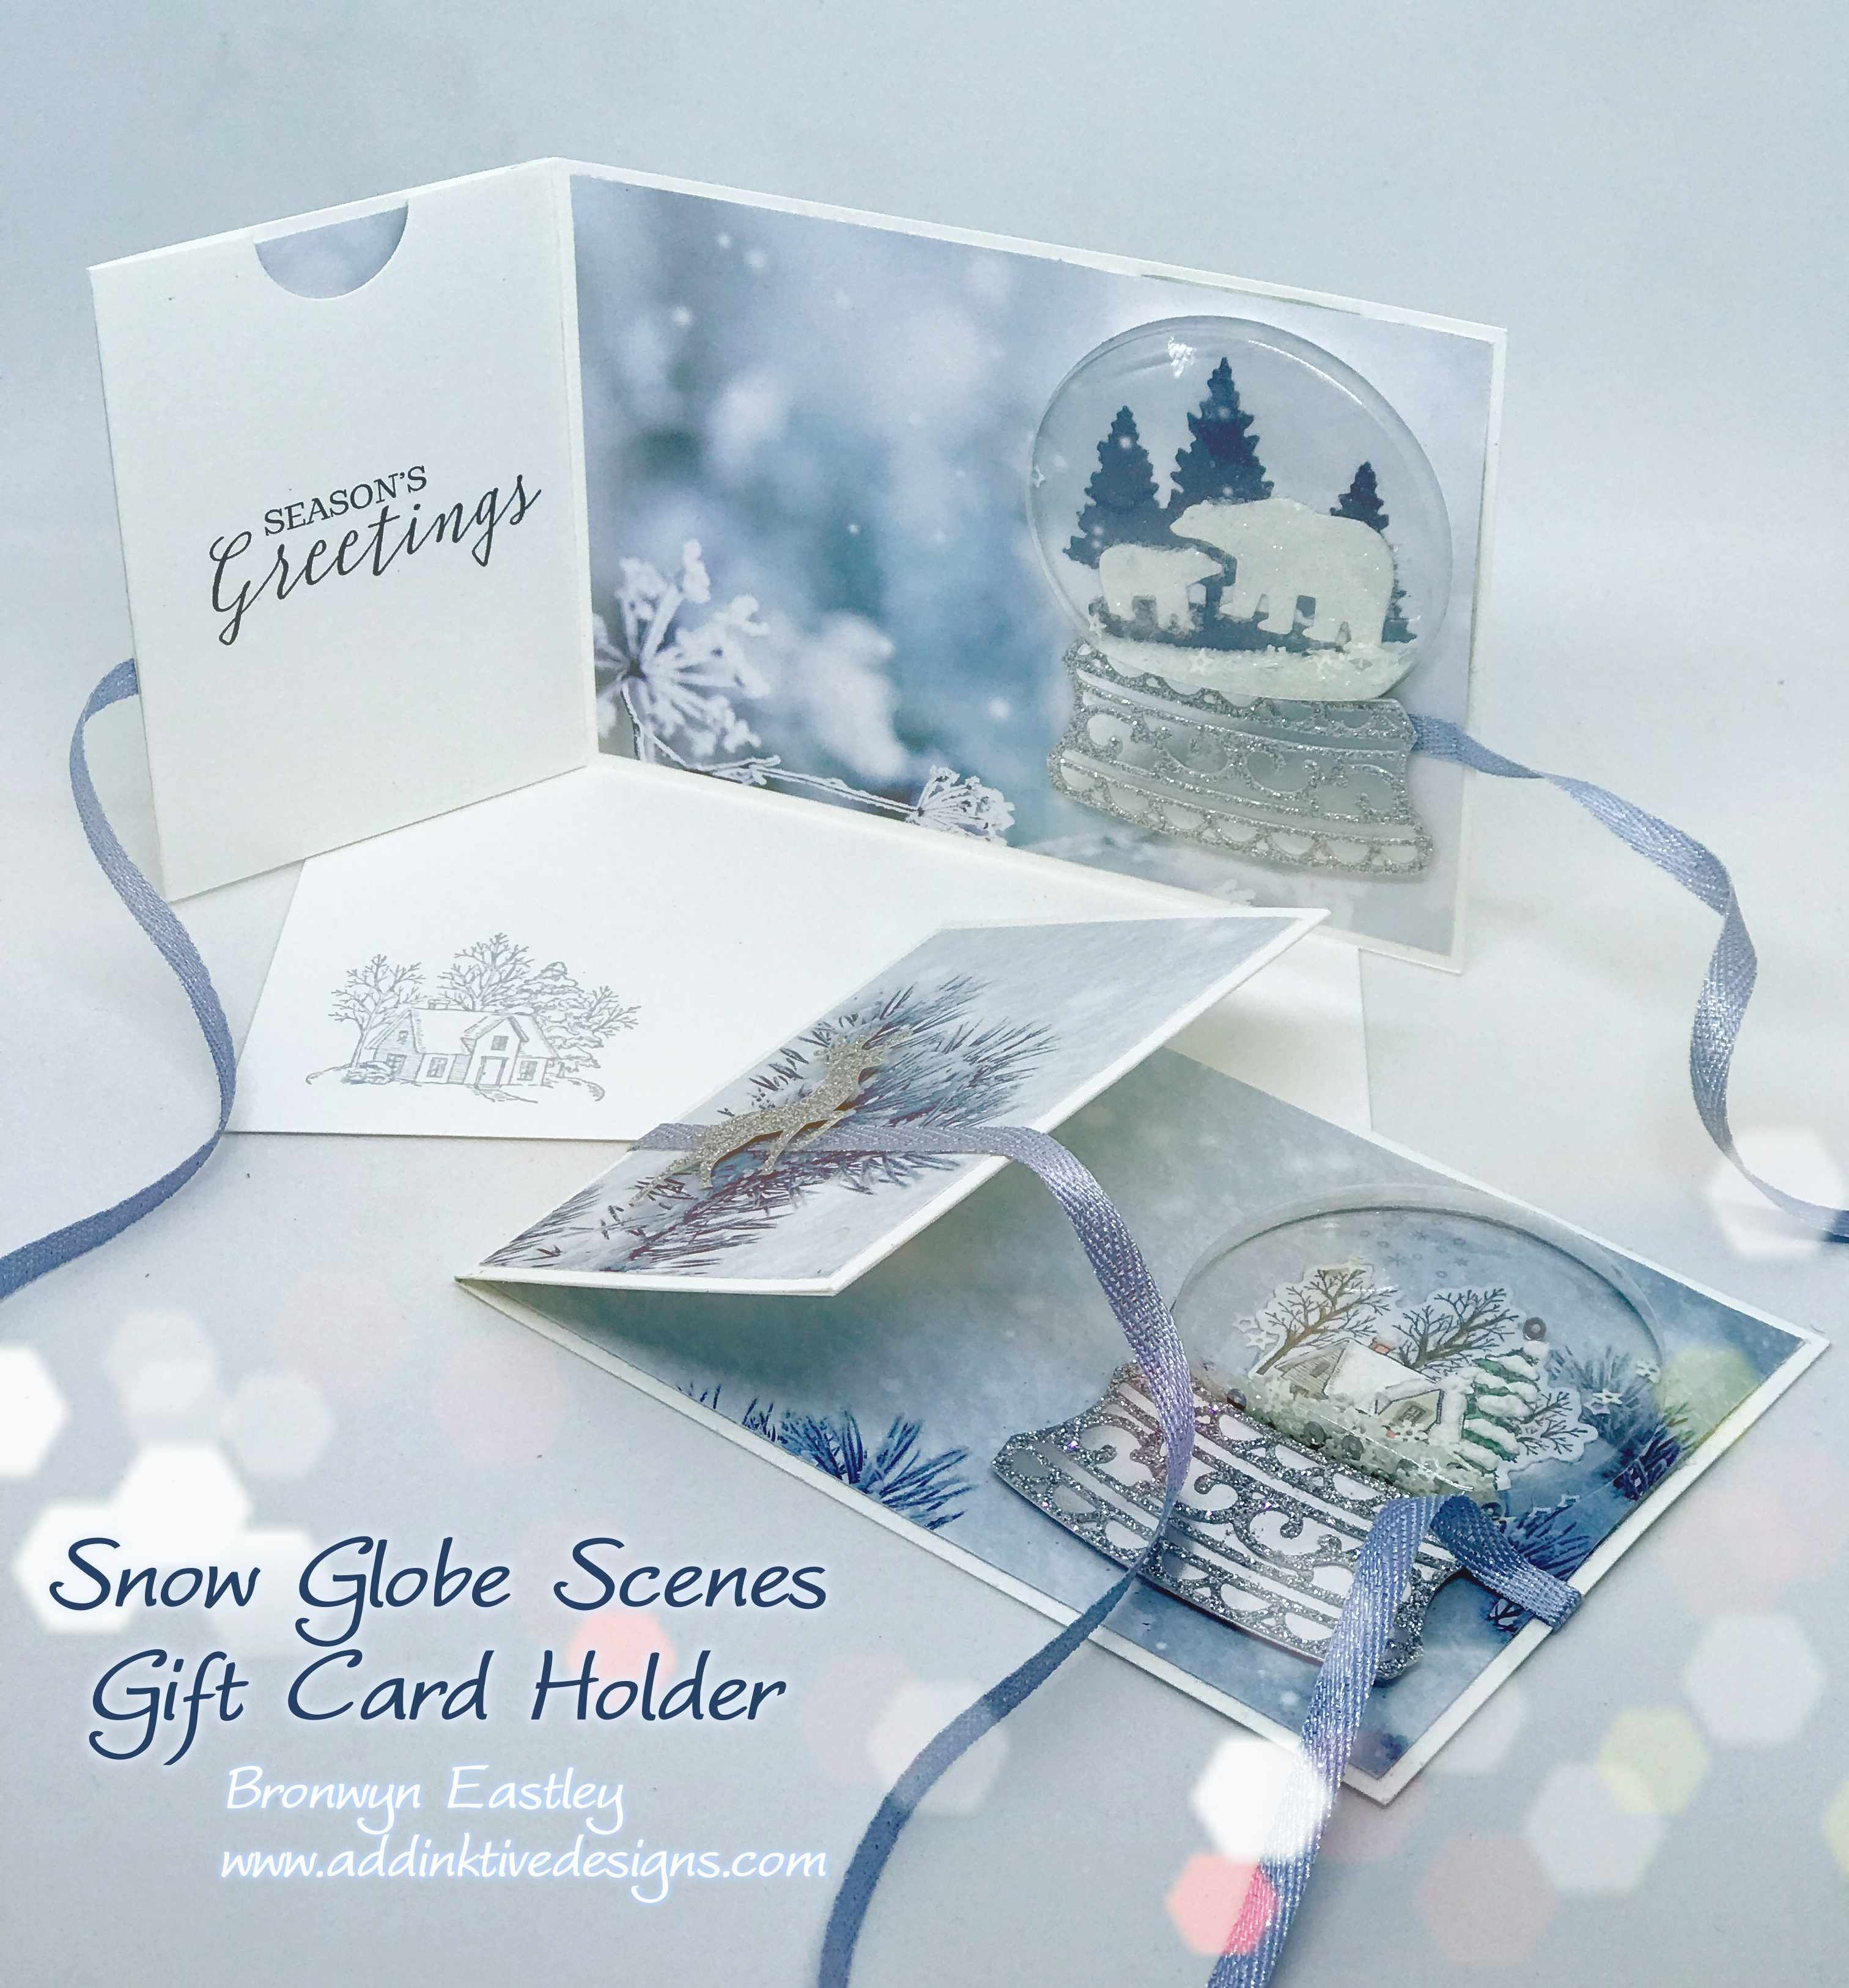 Snow Globe Scenes Gift Card Holder Tutorial Cards, Snow